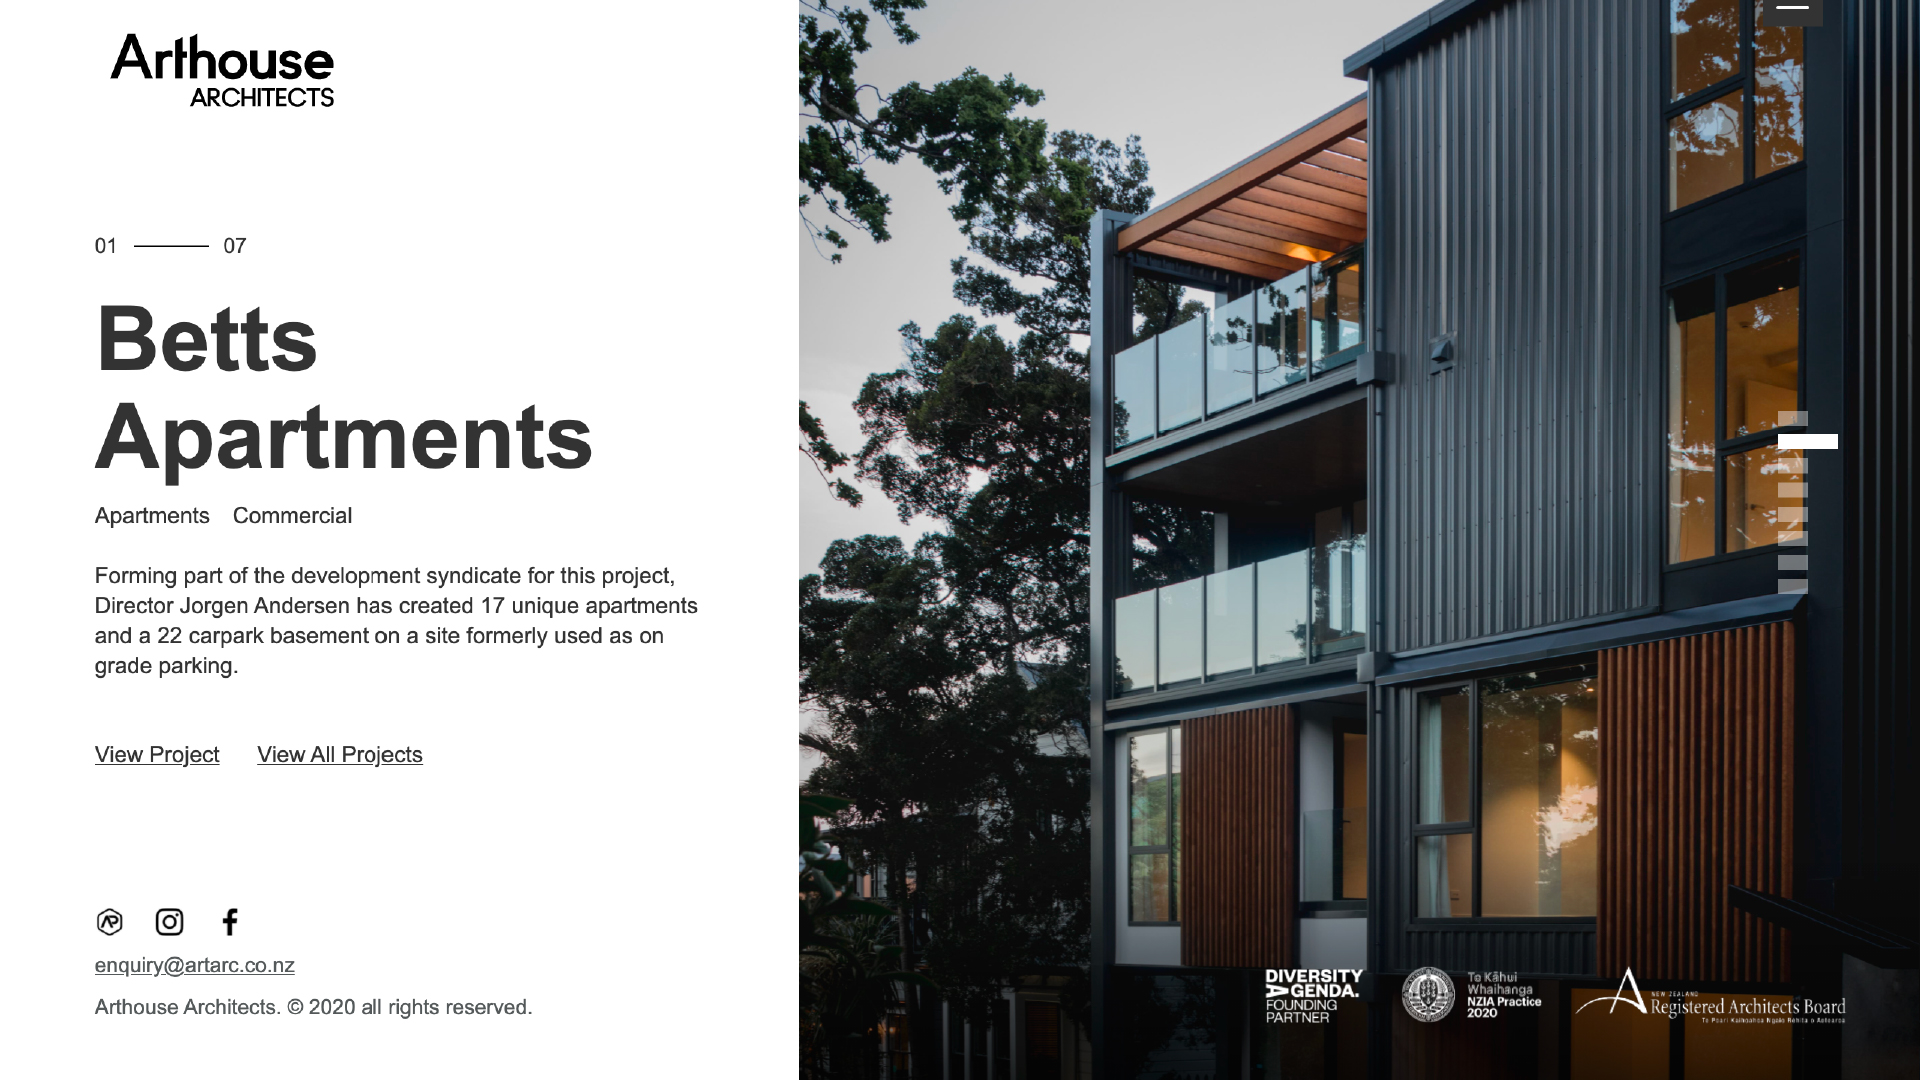 attraction studio arthouse architects brand web betts apartments project